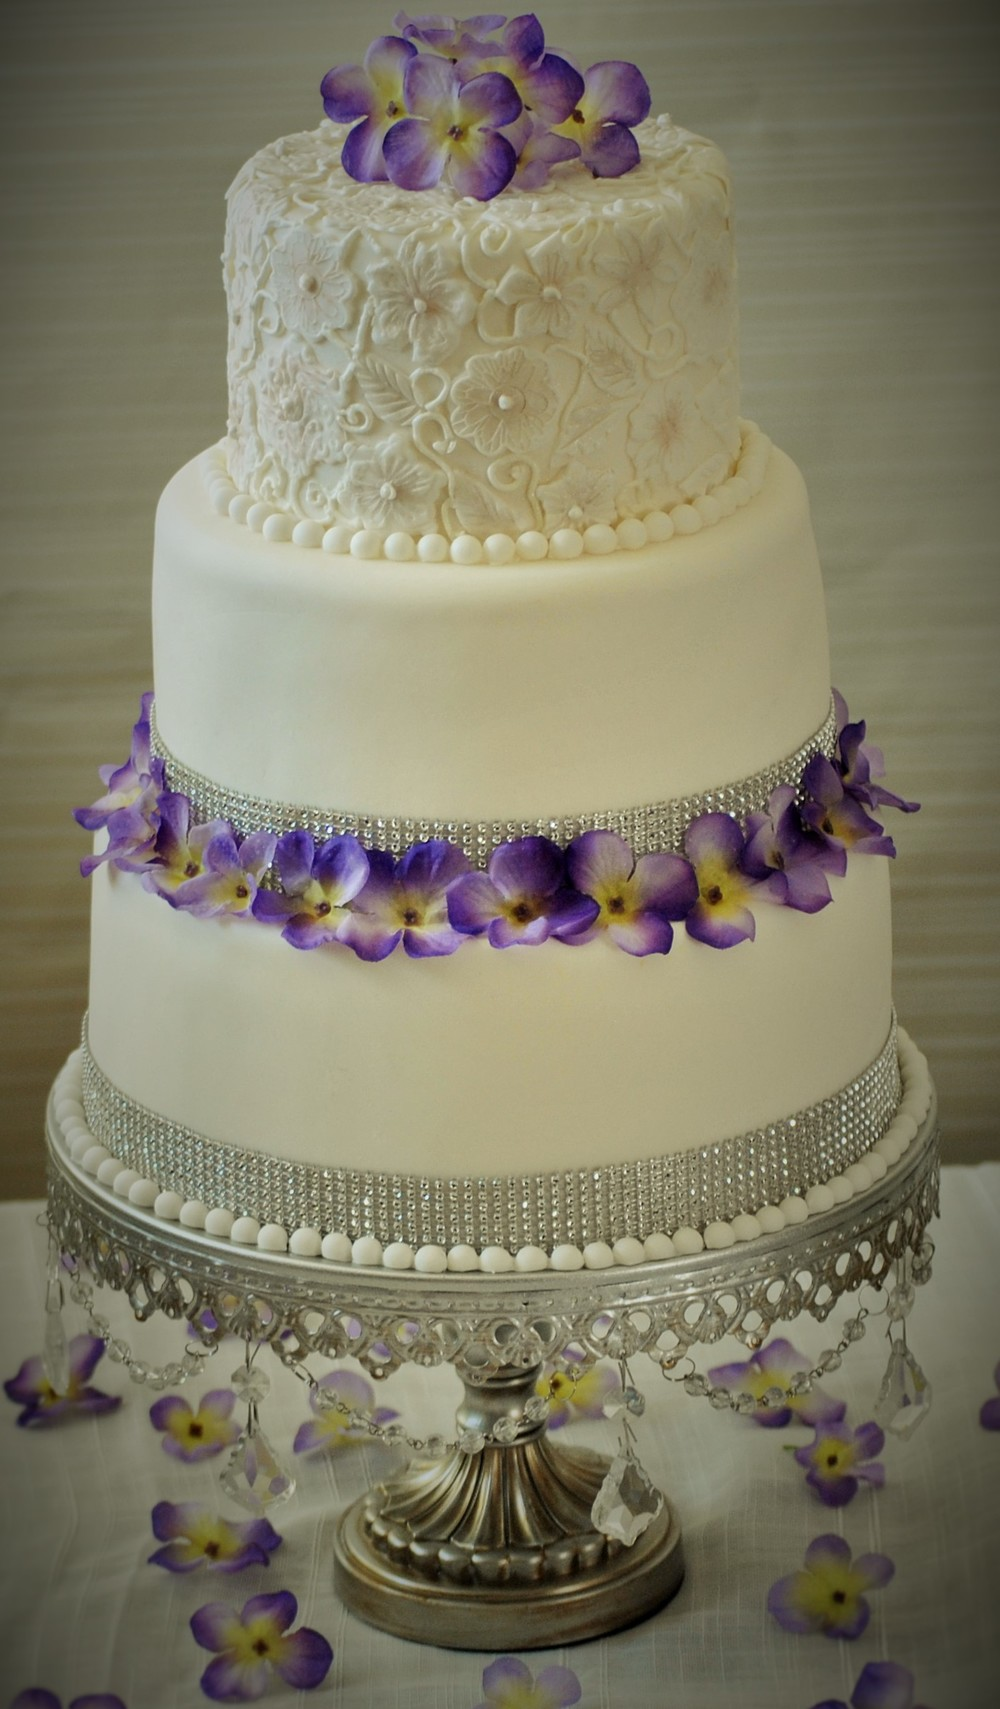 Rosies Gourmet Cakes - Wedding Cake Richmond Va